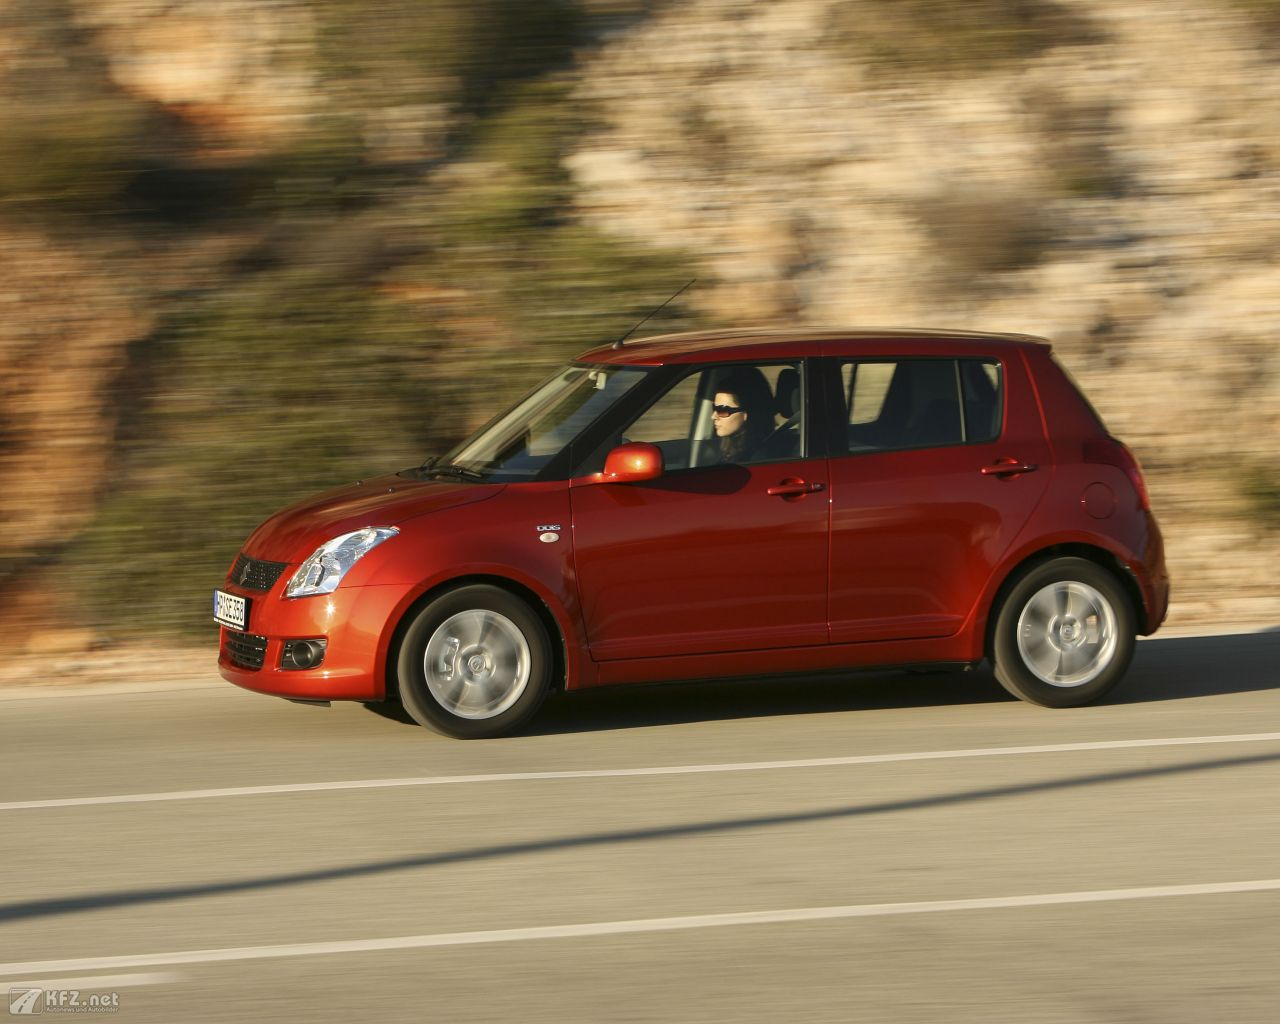 suzuki-swift-1280x1024-16